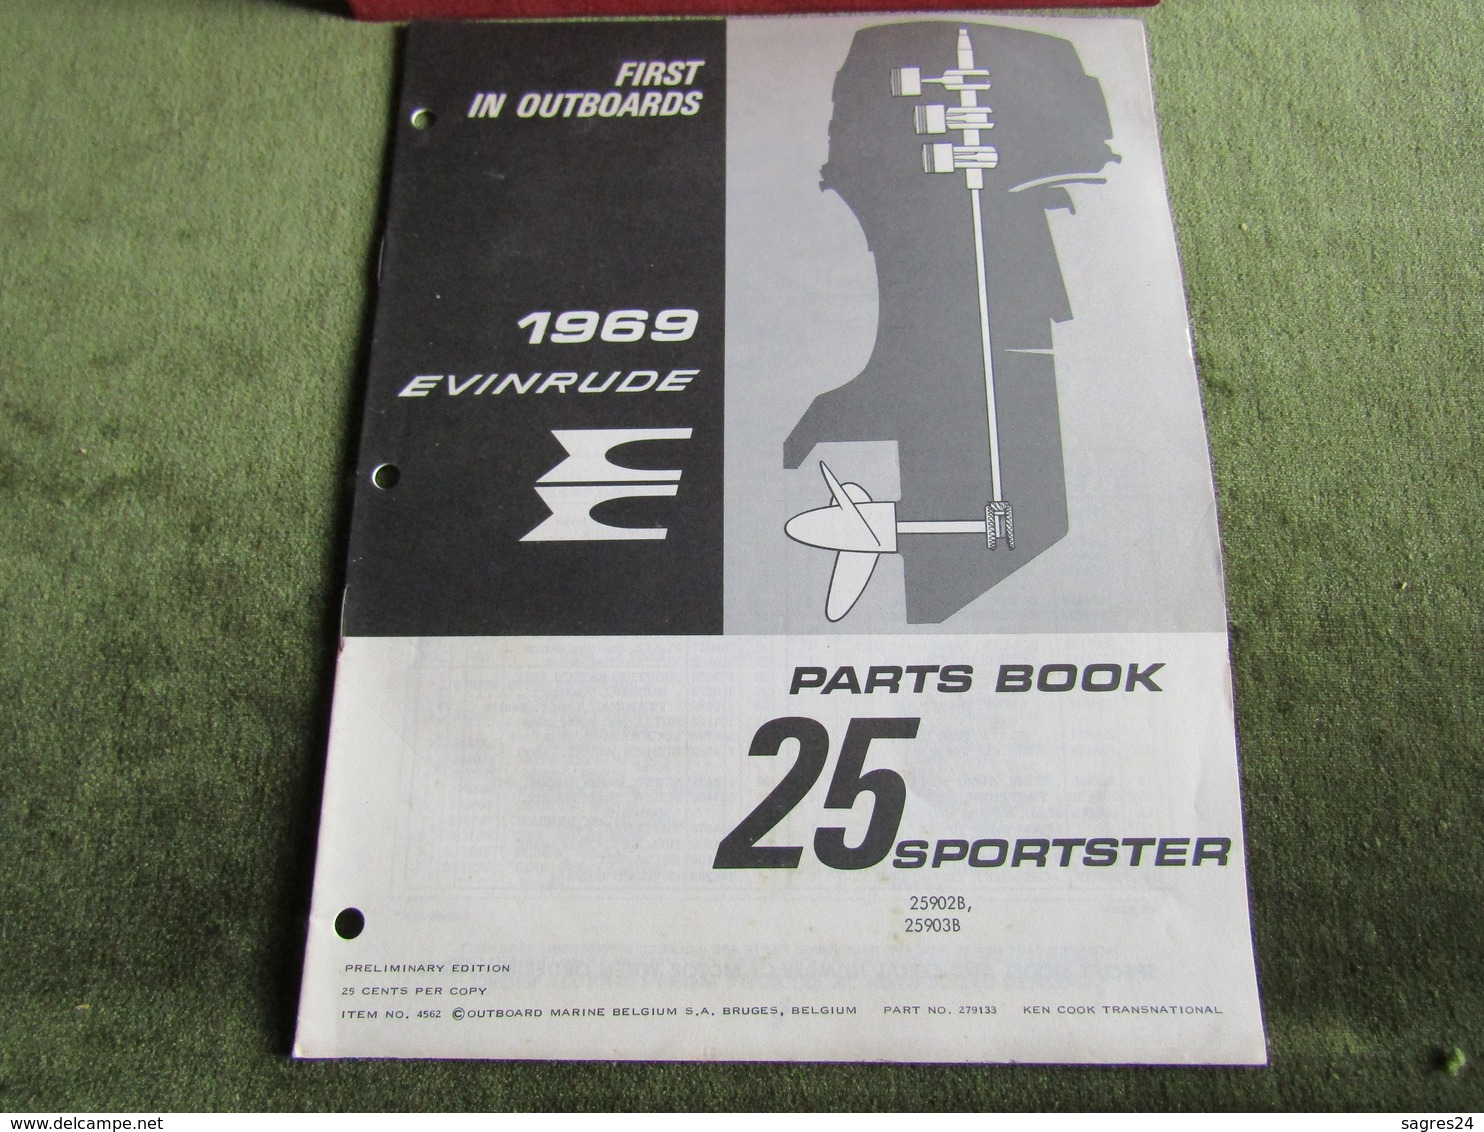 Evinrude Outboard 25 Sportster Parts Book 1969 - Boats